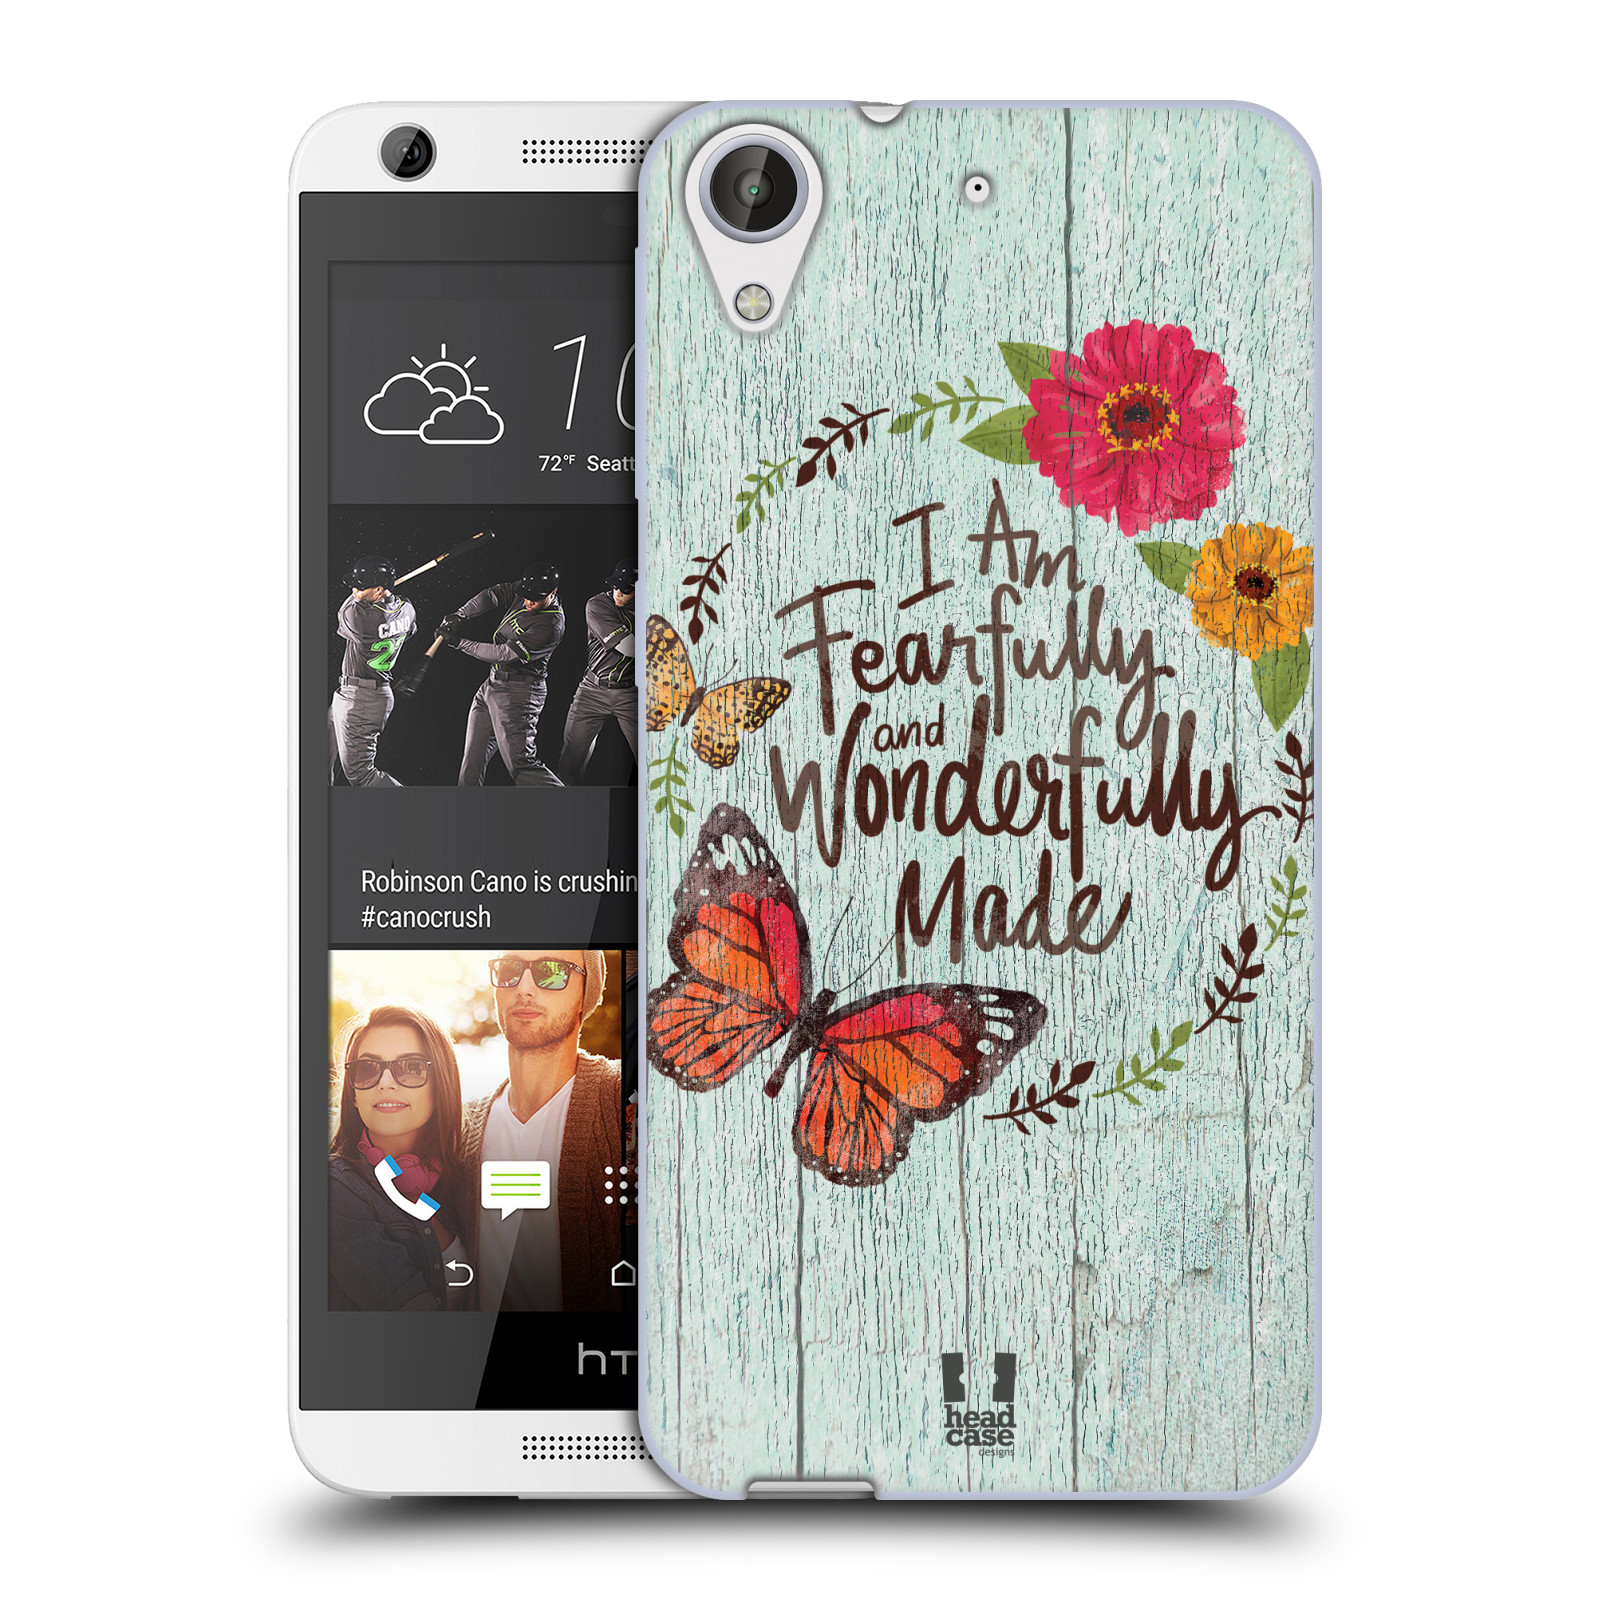 Silikonové pouzdro na mobil HTC Desire 626 / 626G HEAD CASE LIFE IN THE COUNTRY WONDERFULLY